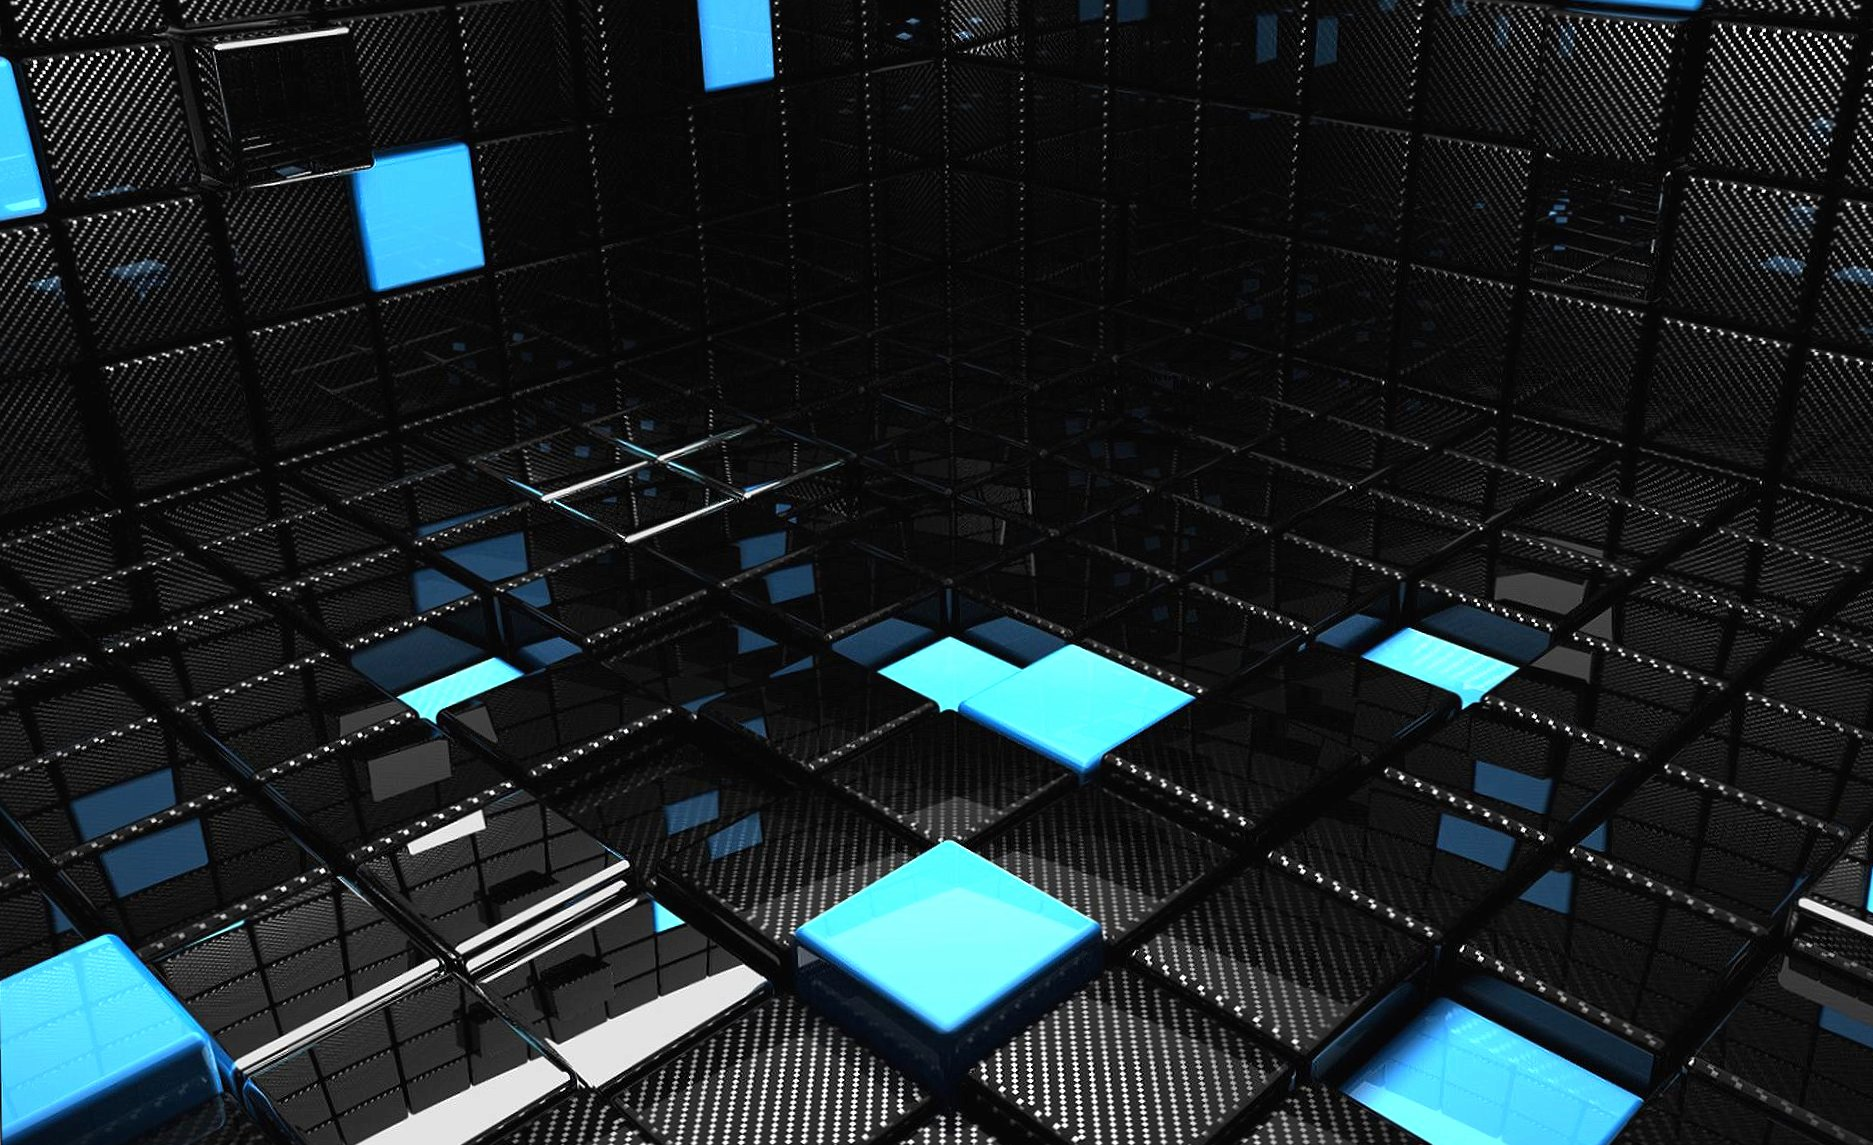 Black and blue cubes 3d digital wallpapers HD quality